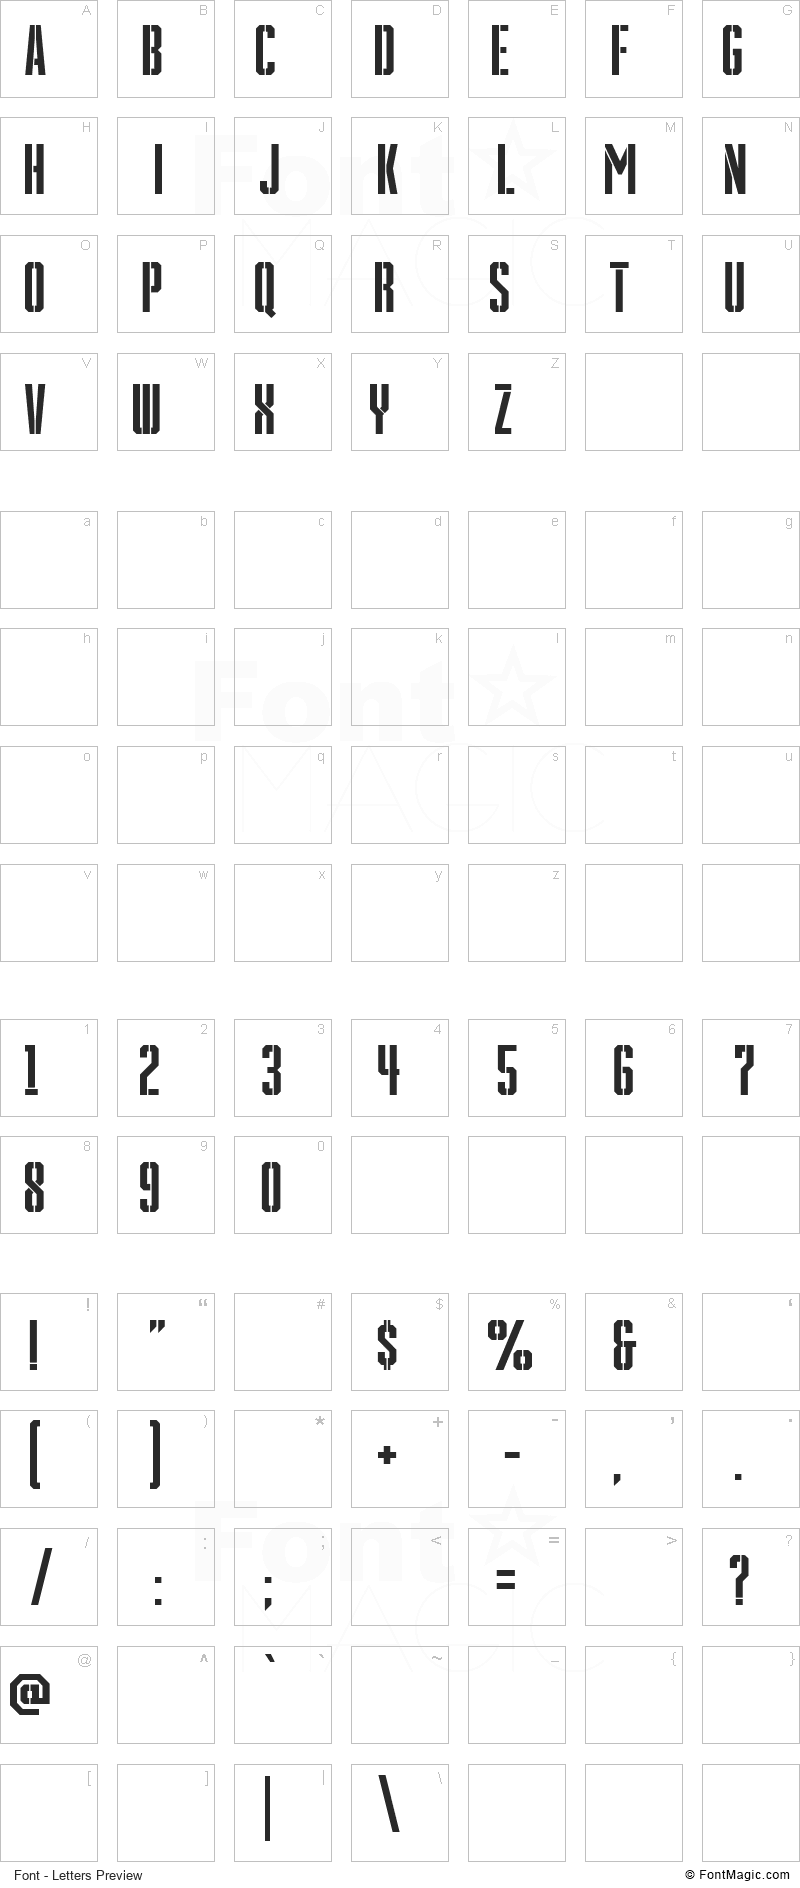 Grenade Stencil Font - All Latters Preview Chart